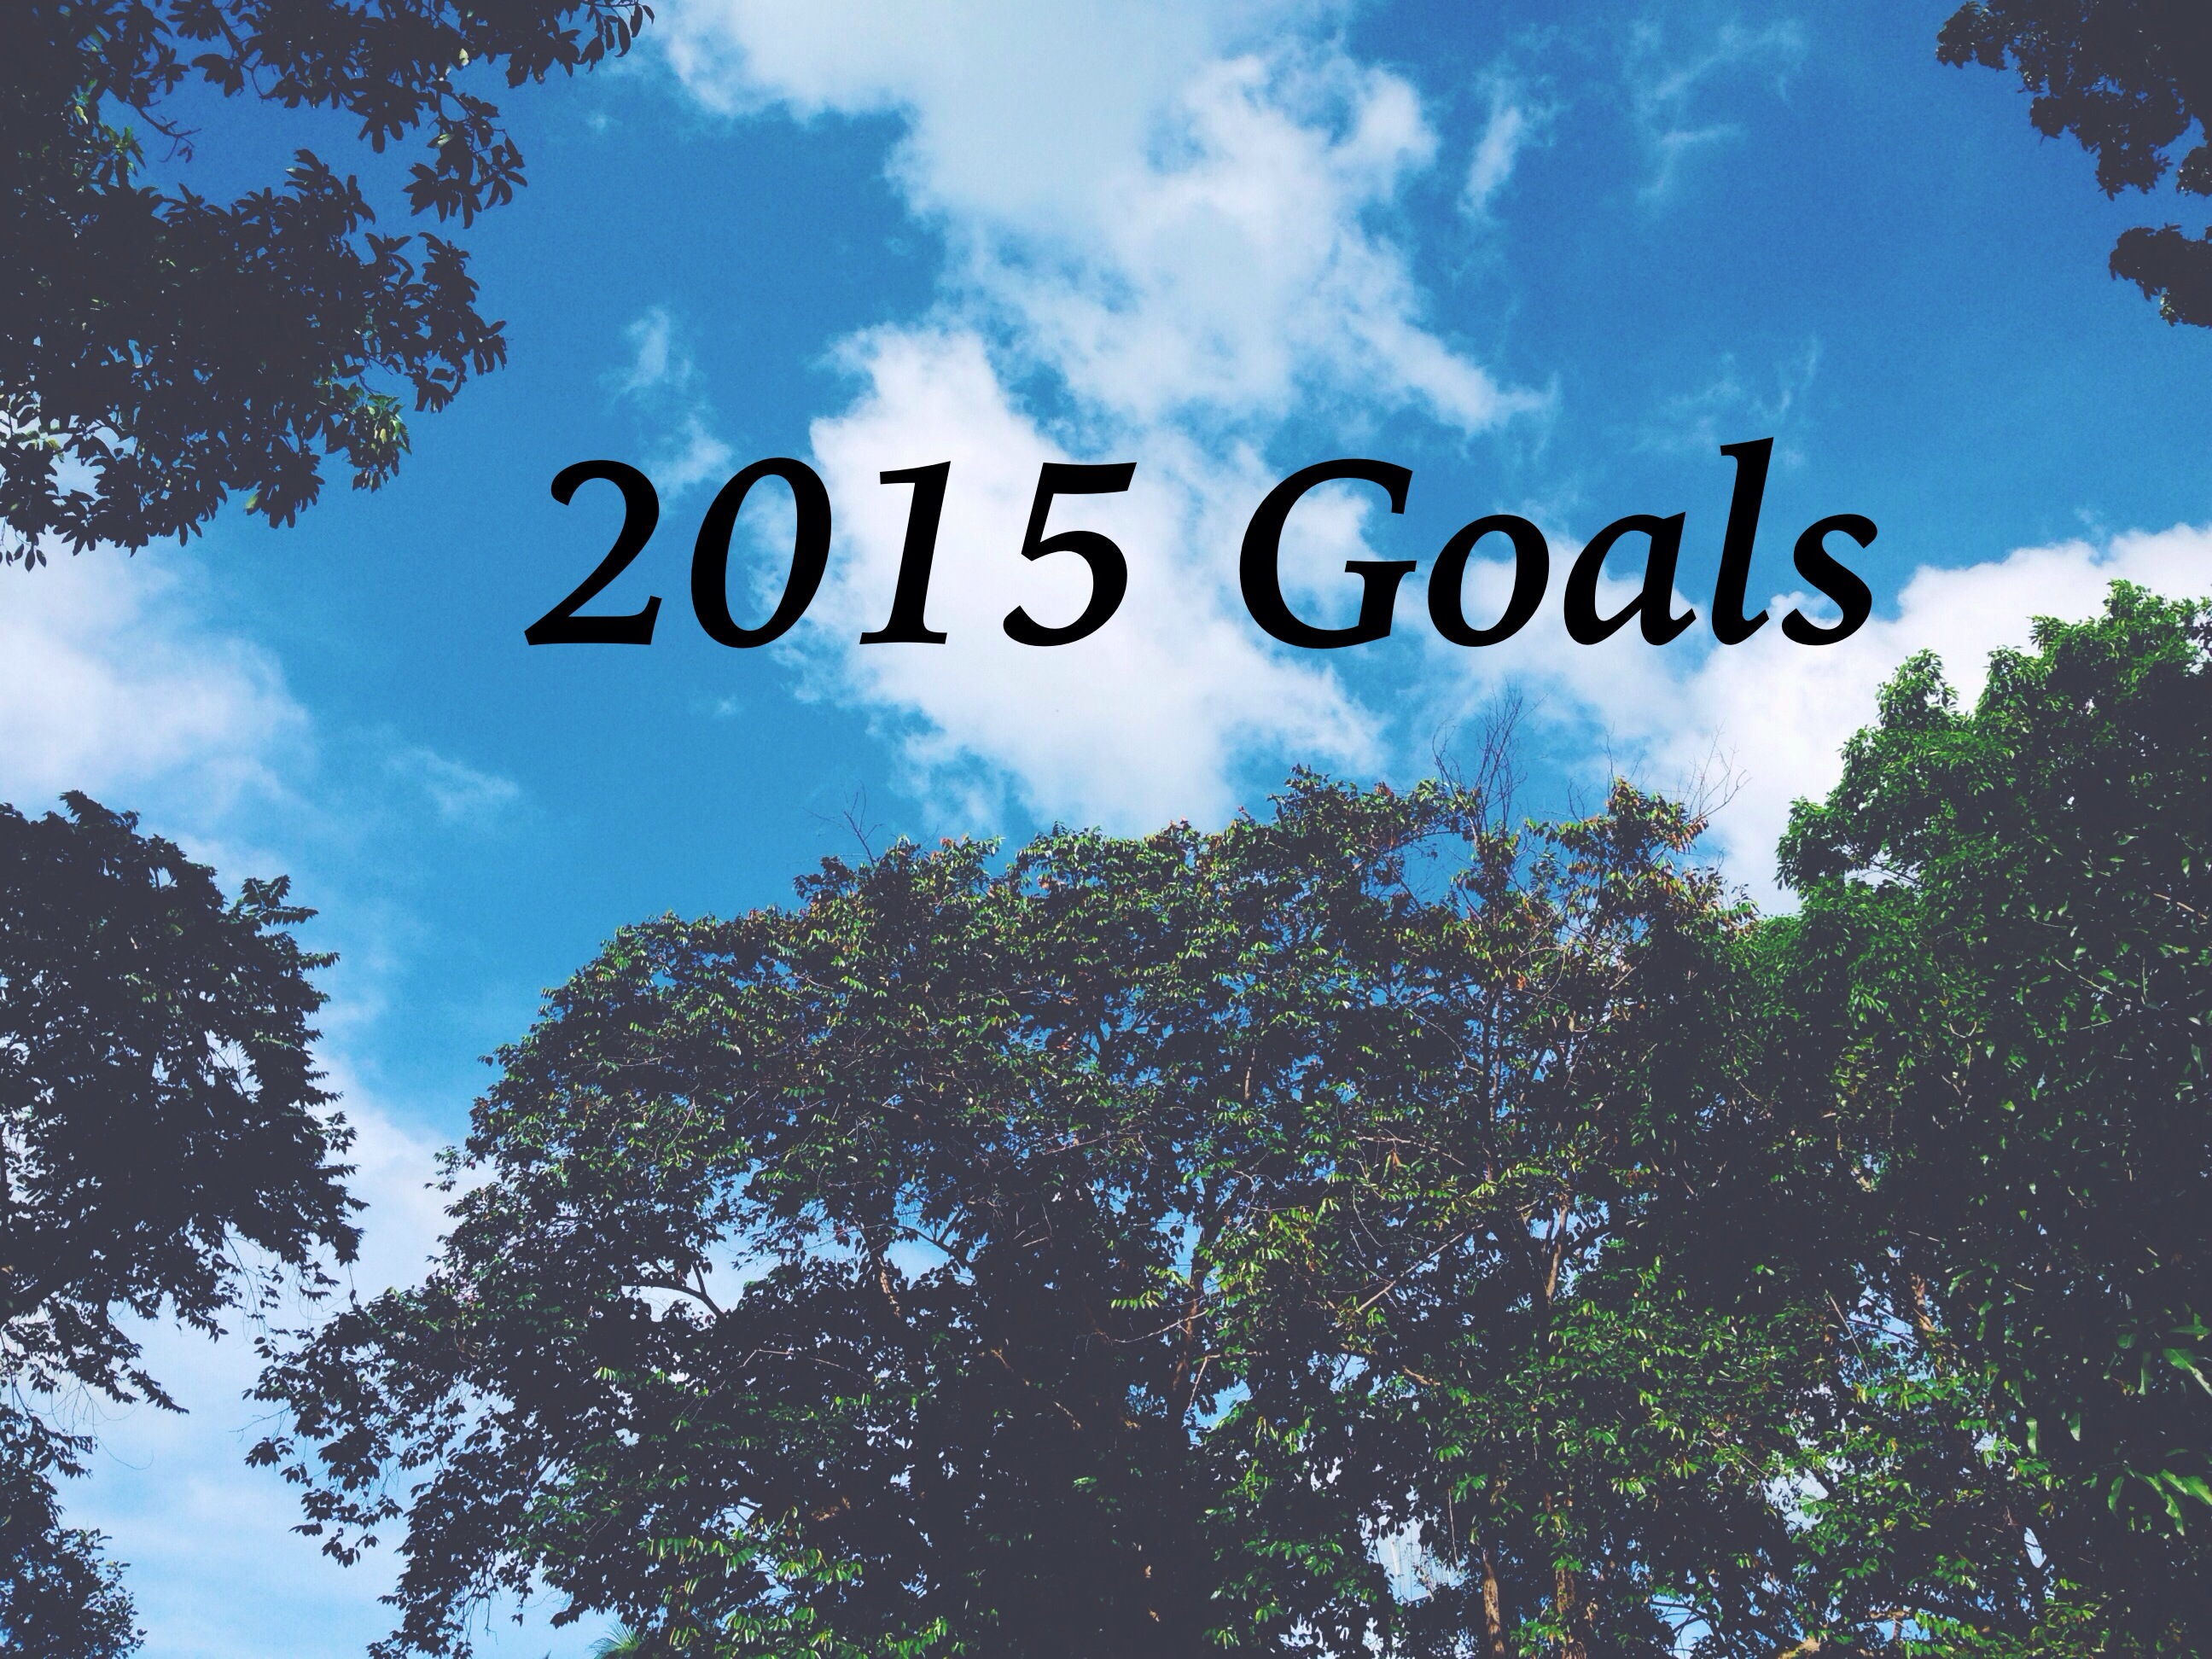 This Year's Goals